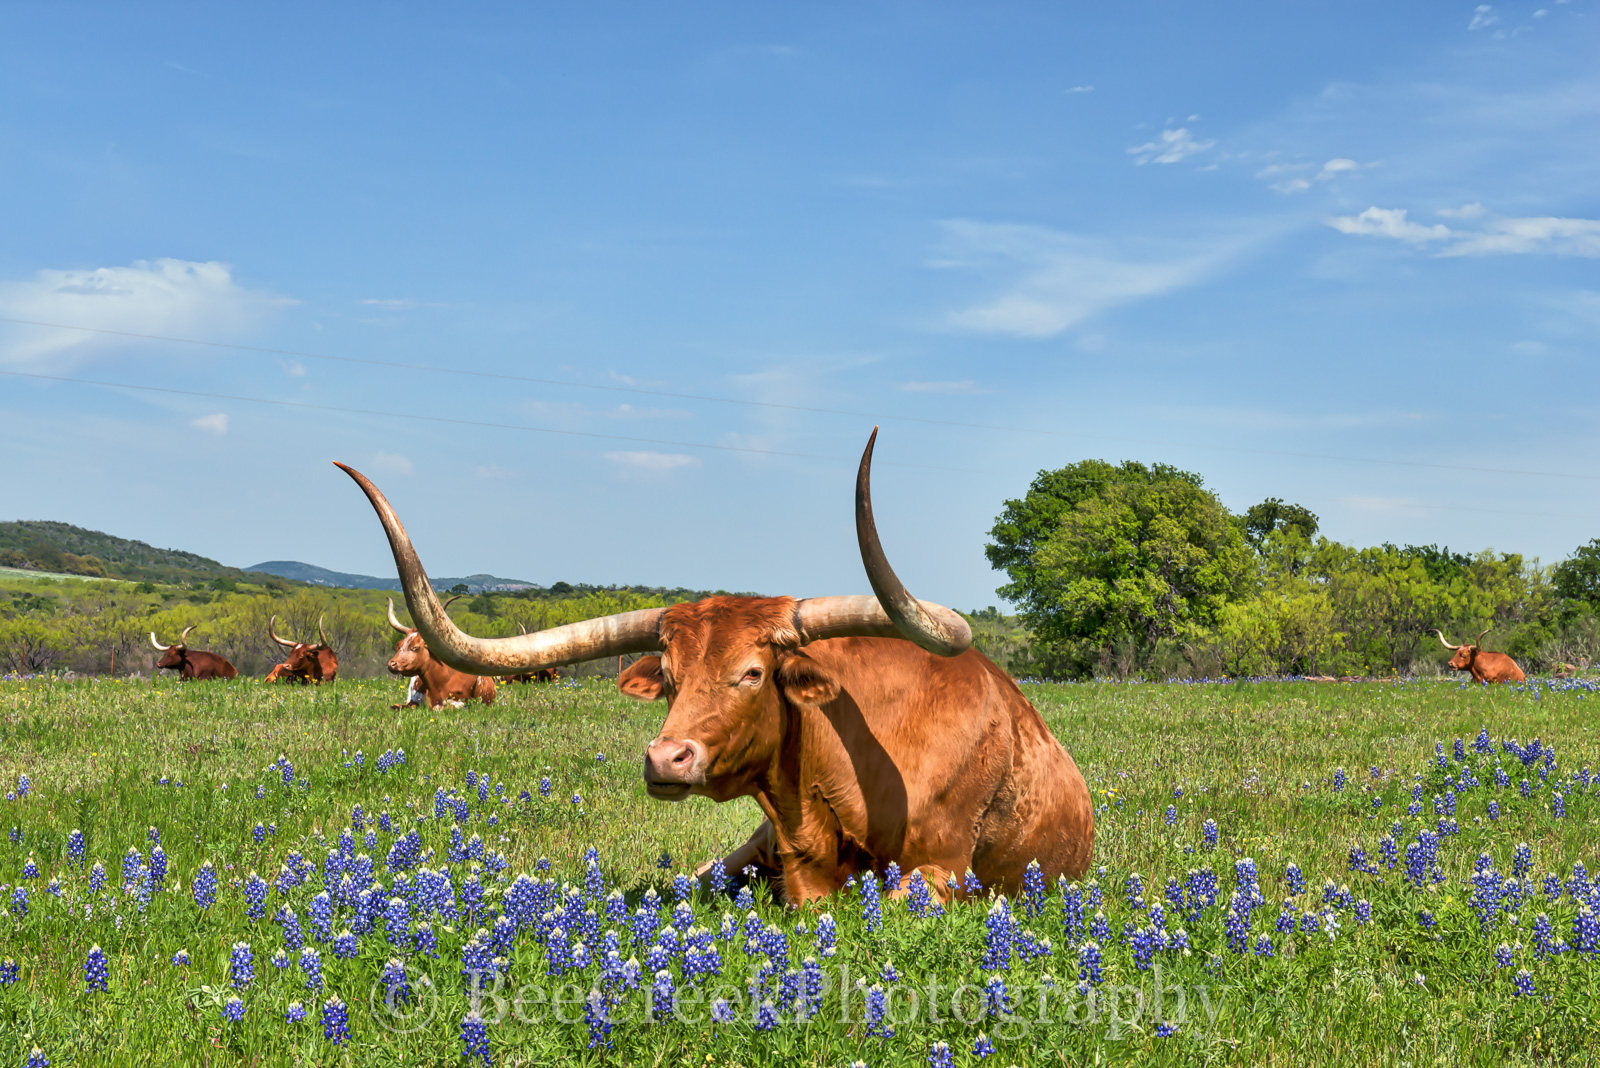 Longhorn in Bluebonnets - This longhorn was laying down in a field of bluebonnets and they all seem to be just sunning themselves...